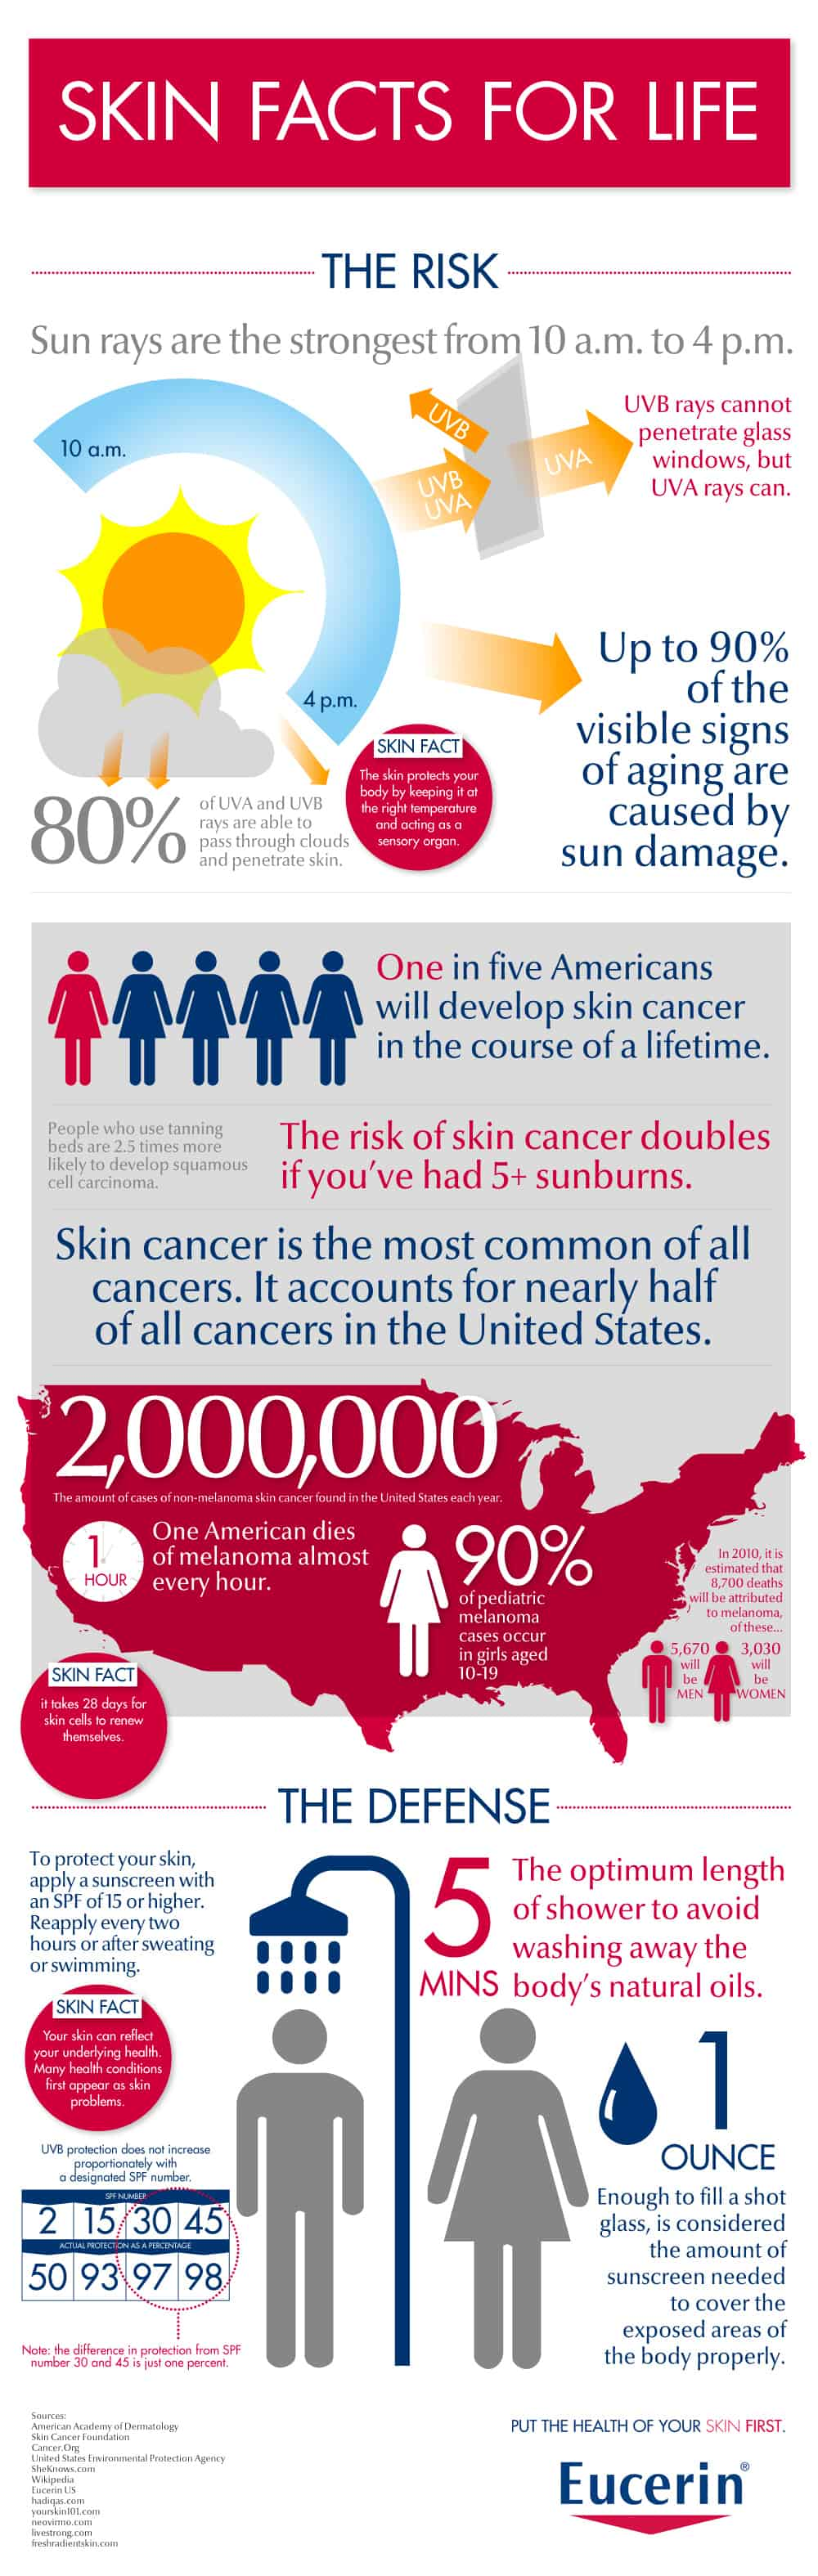 Skin Cancer Tanning Bed Facts